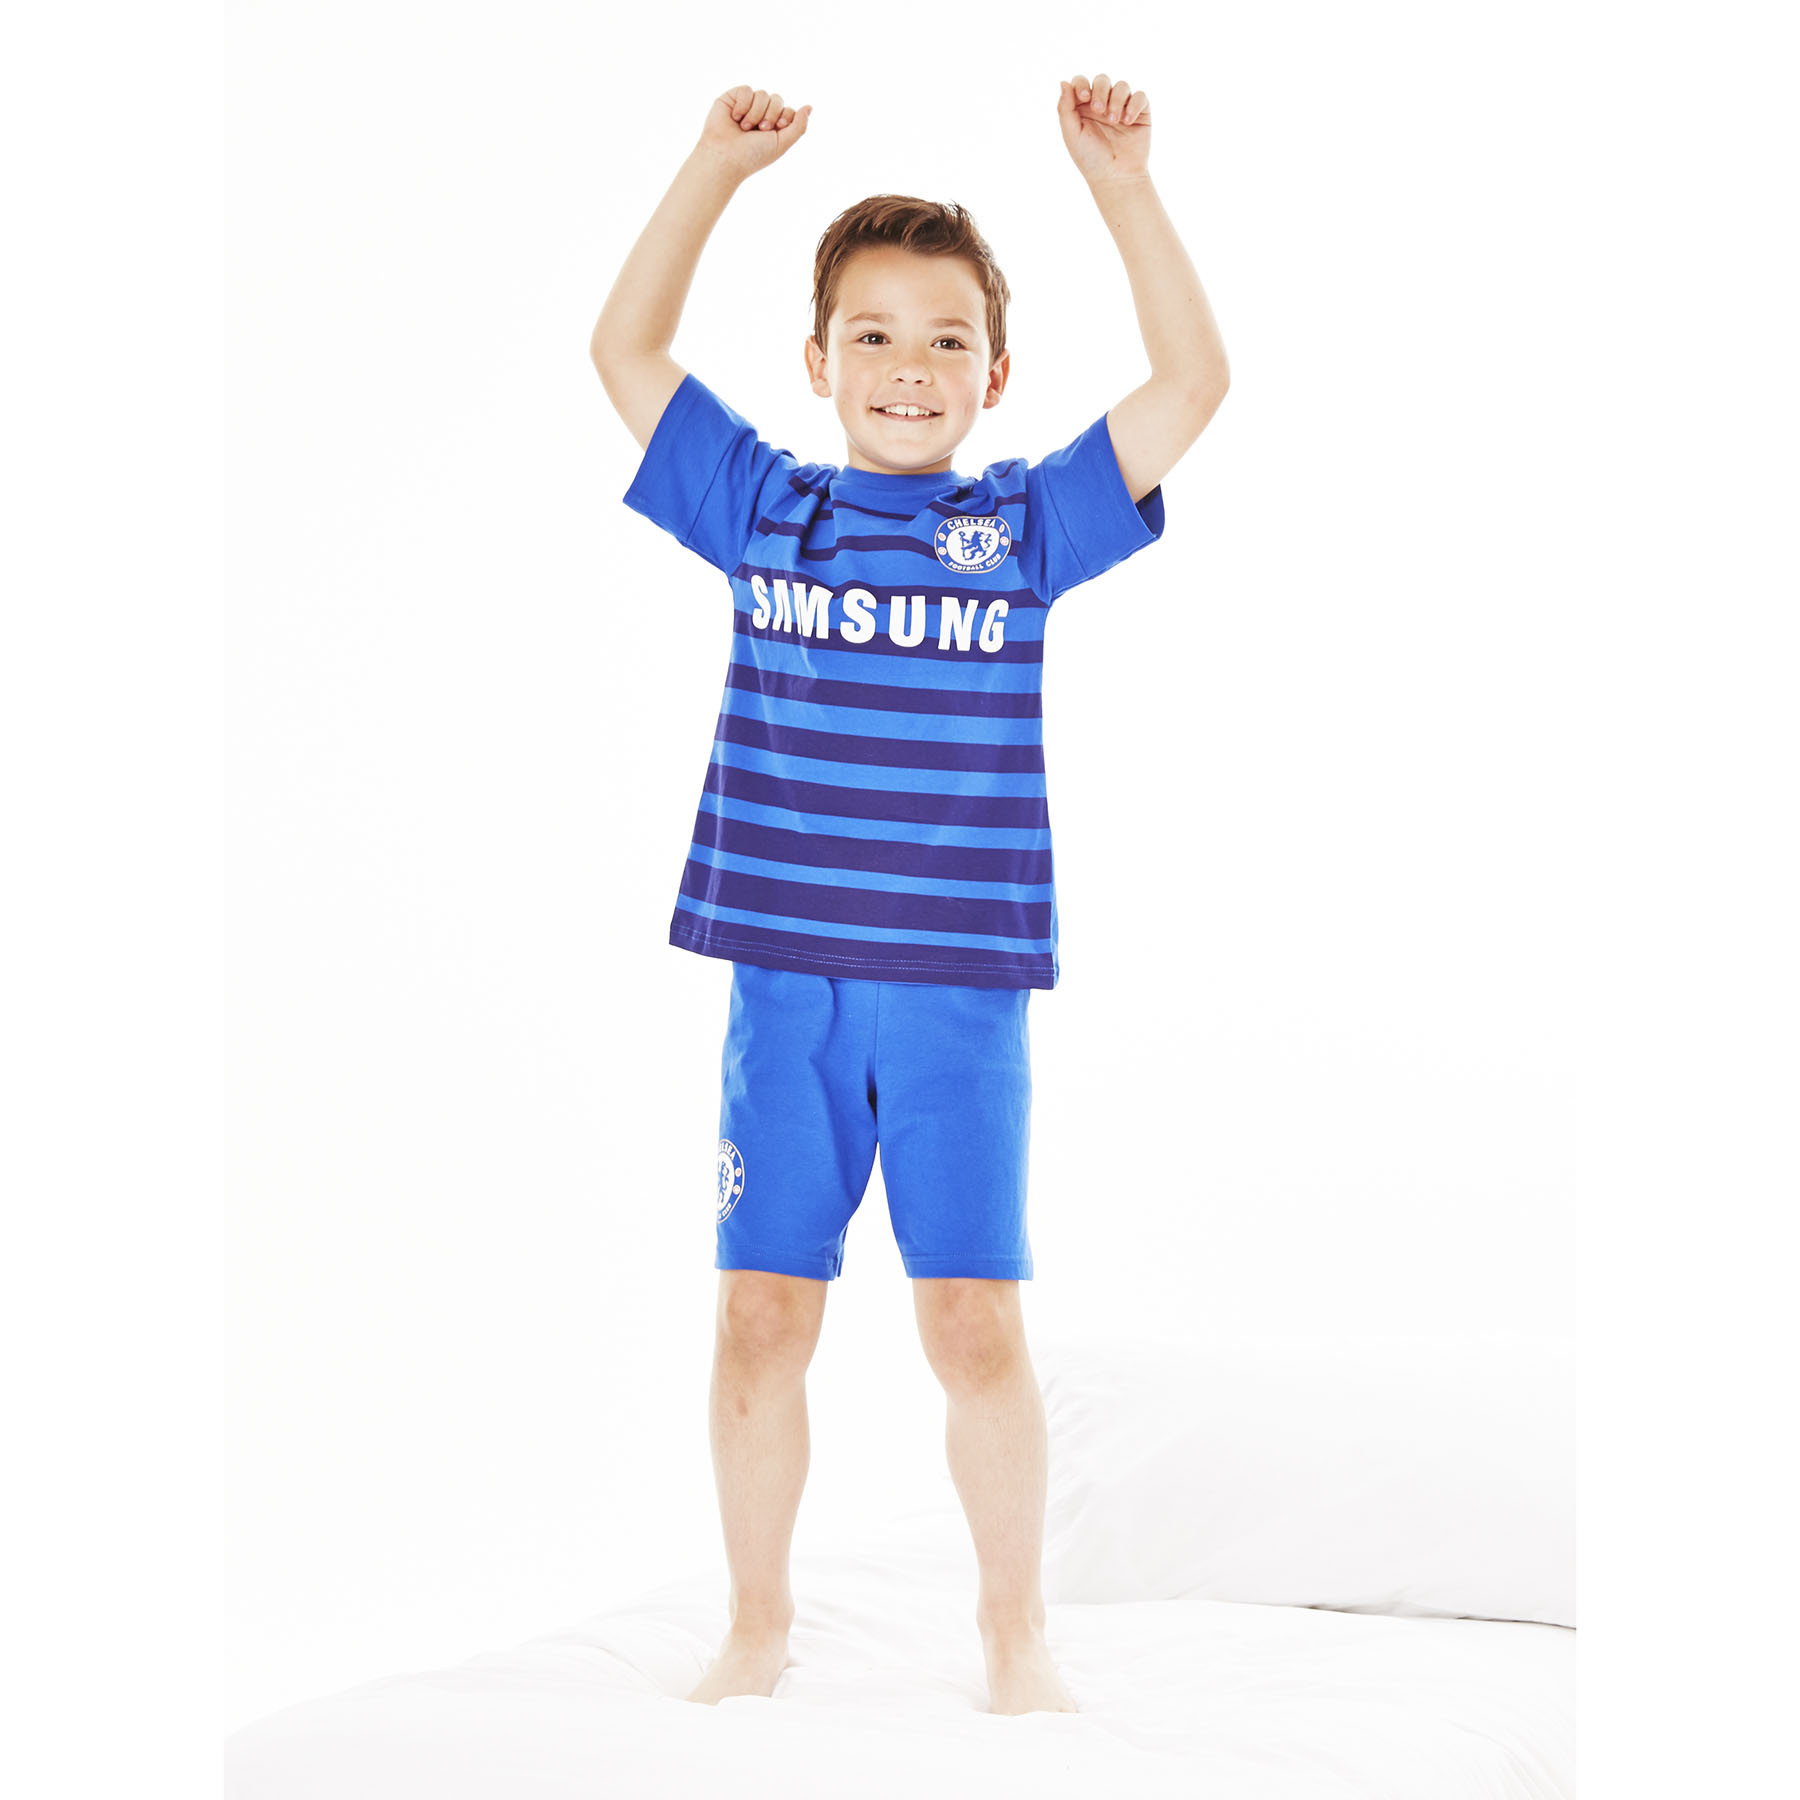 Chelsea Home Kit Pyjamas- Reflex Blue - Boys